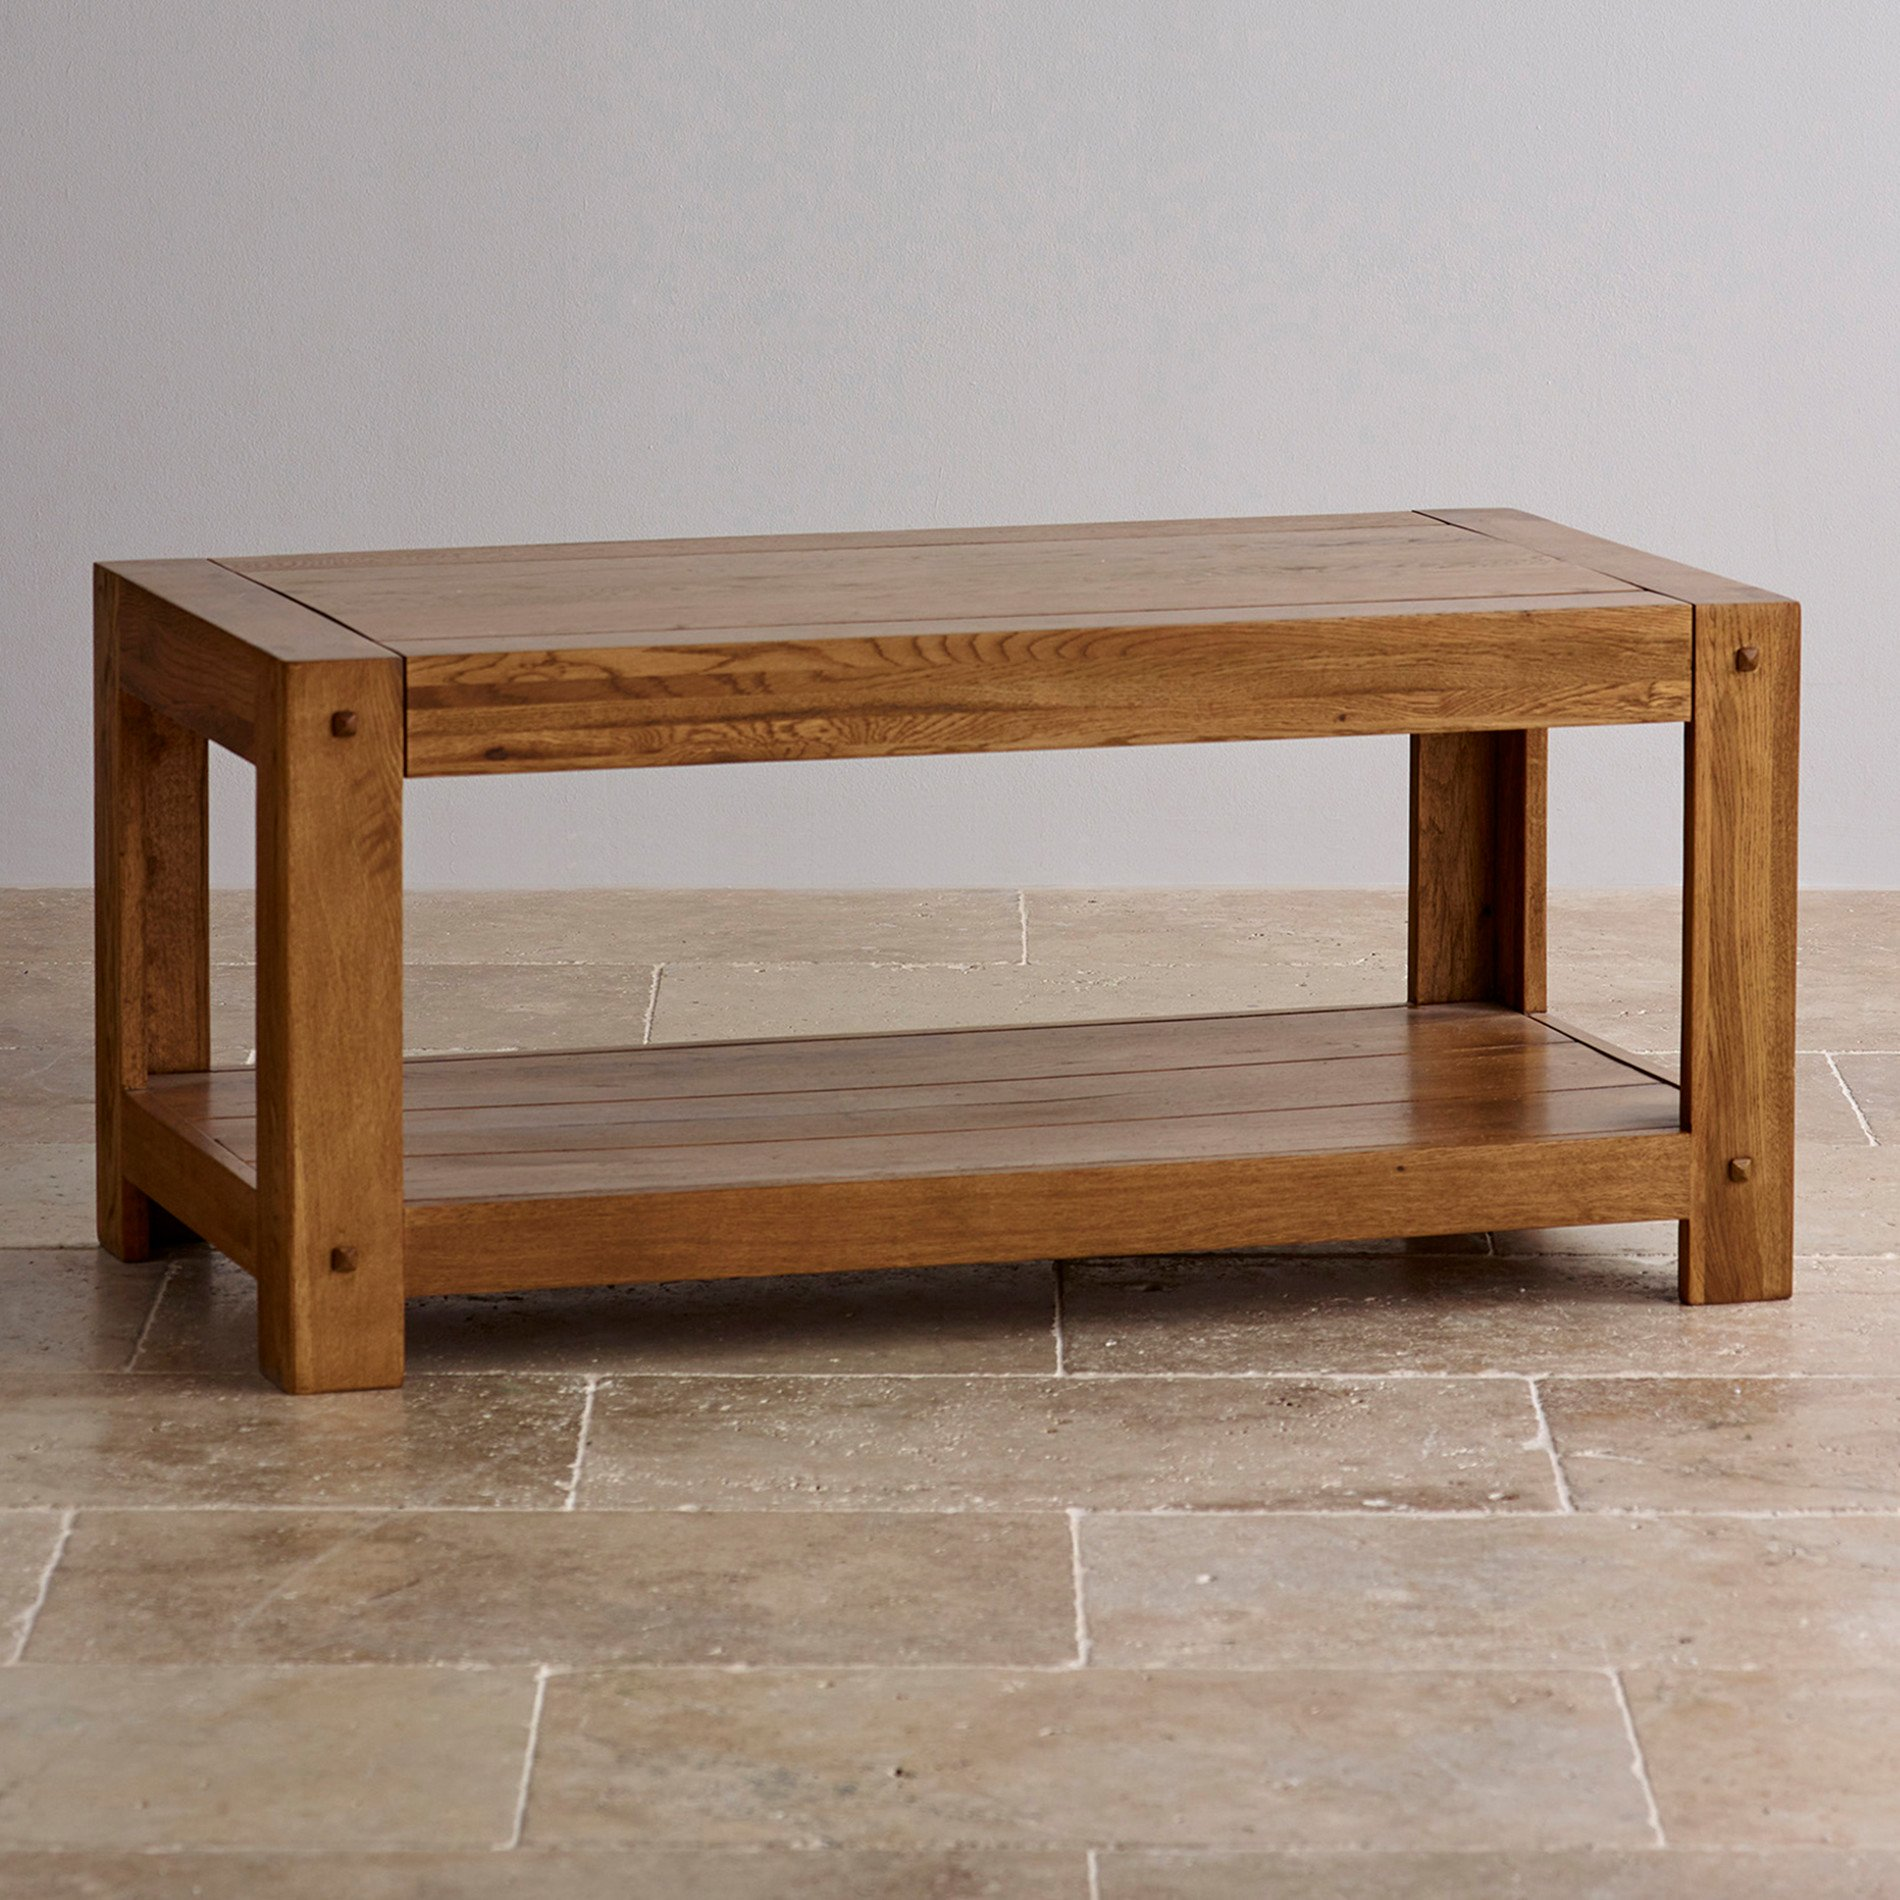 Quercus Coffee Table In Rustic Solid Oak